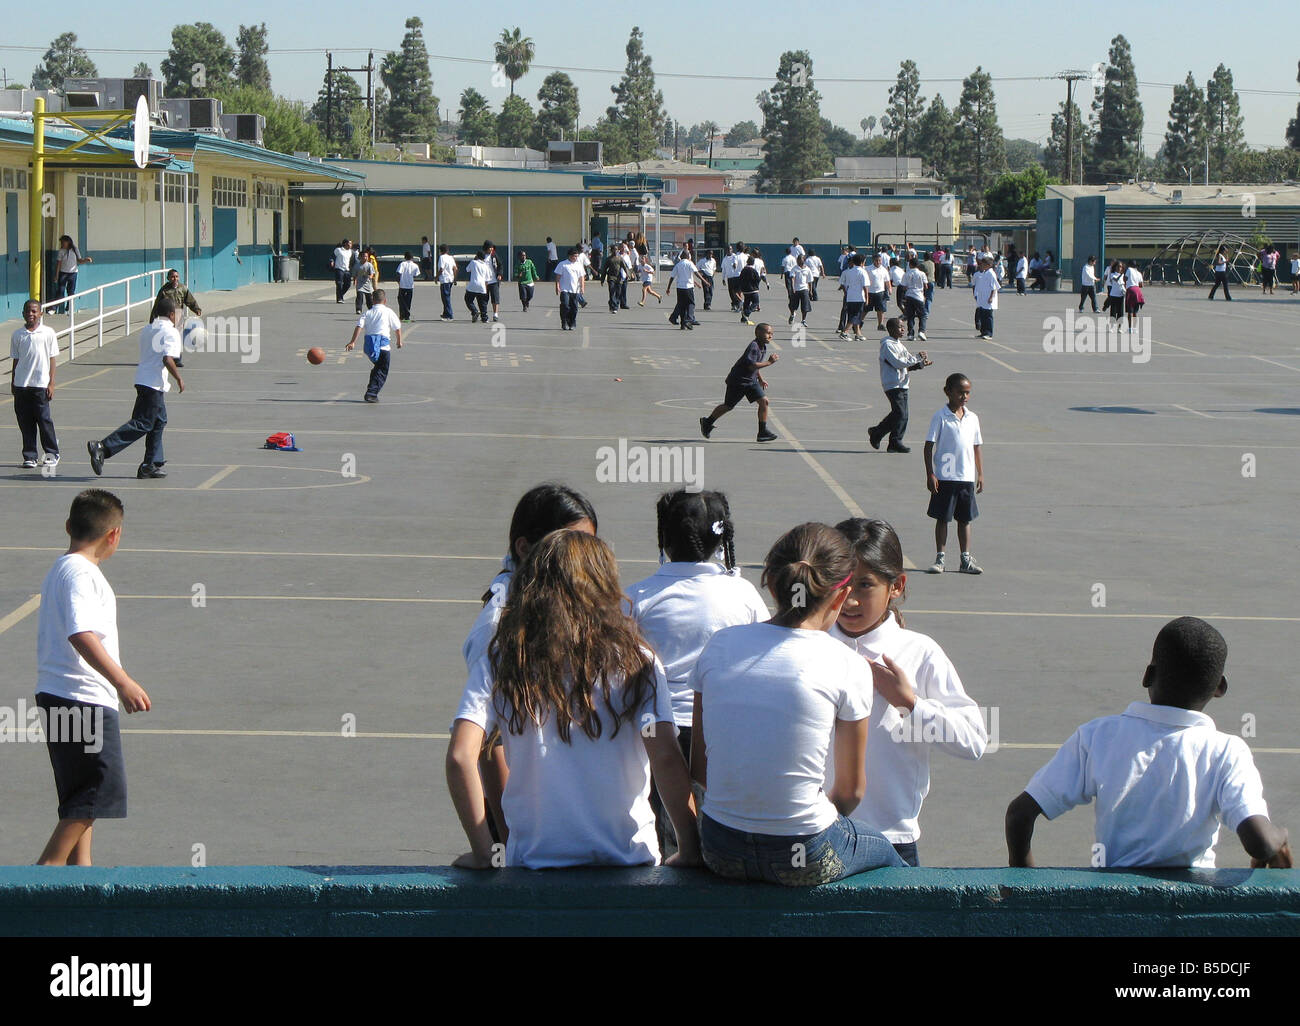 Recess on the School Yard - Stock Image